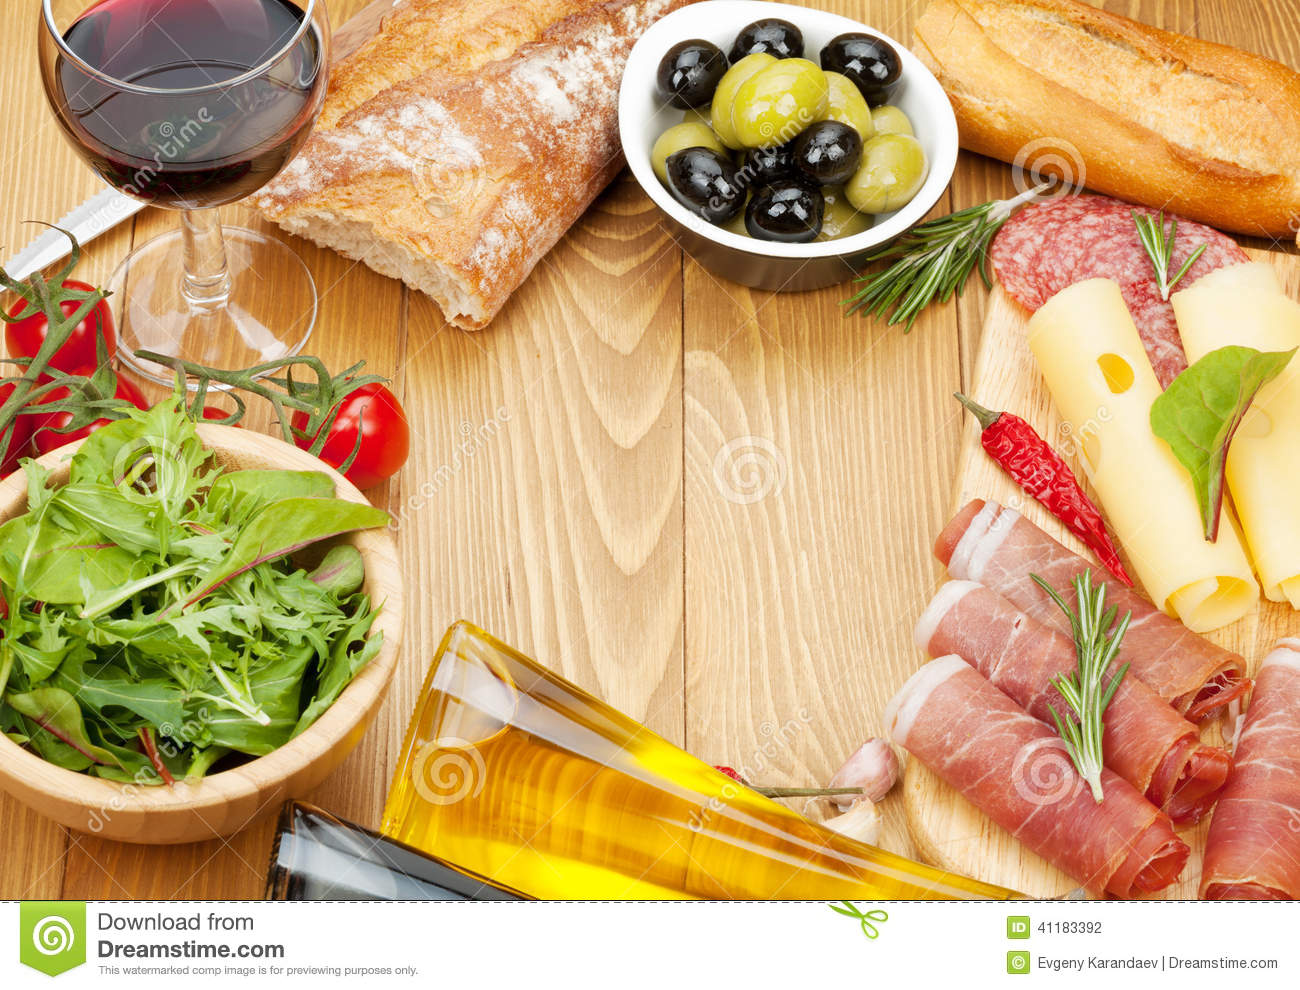 ... Photo: Red wine with cheese, prosciutto, bread, vegetables and spices